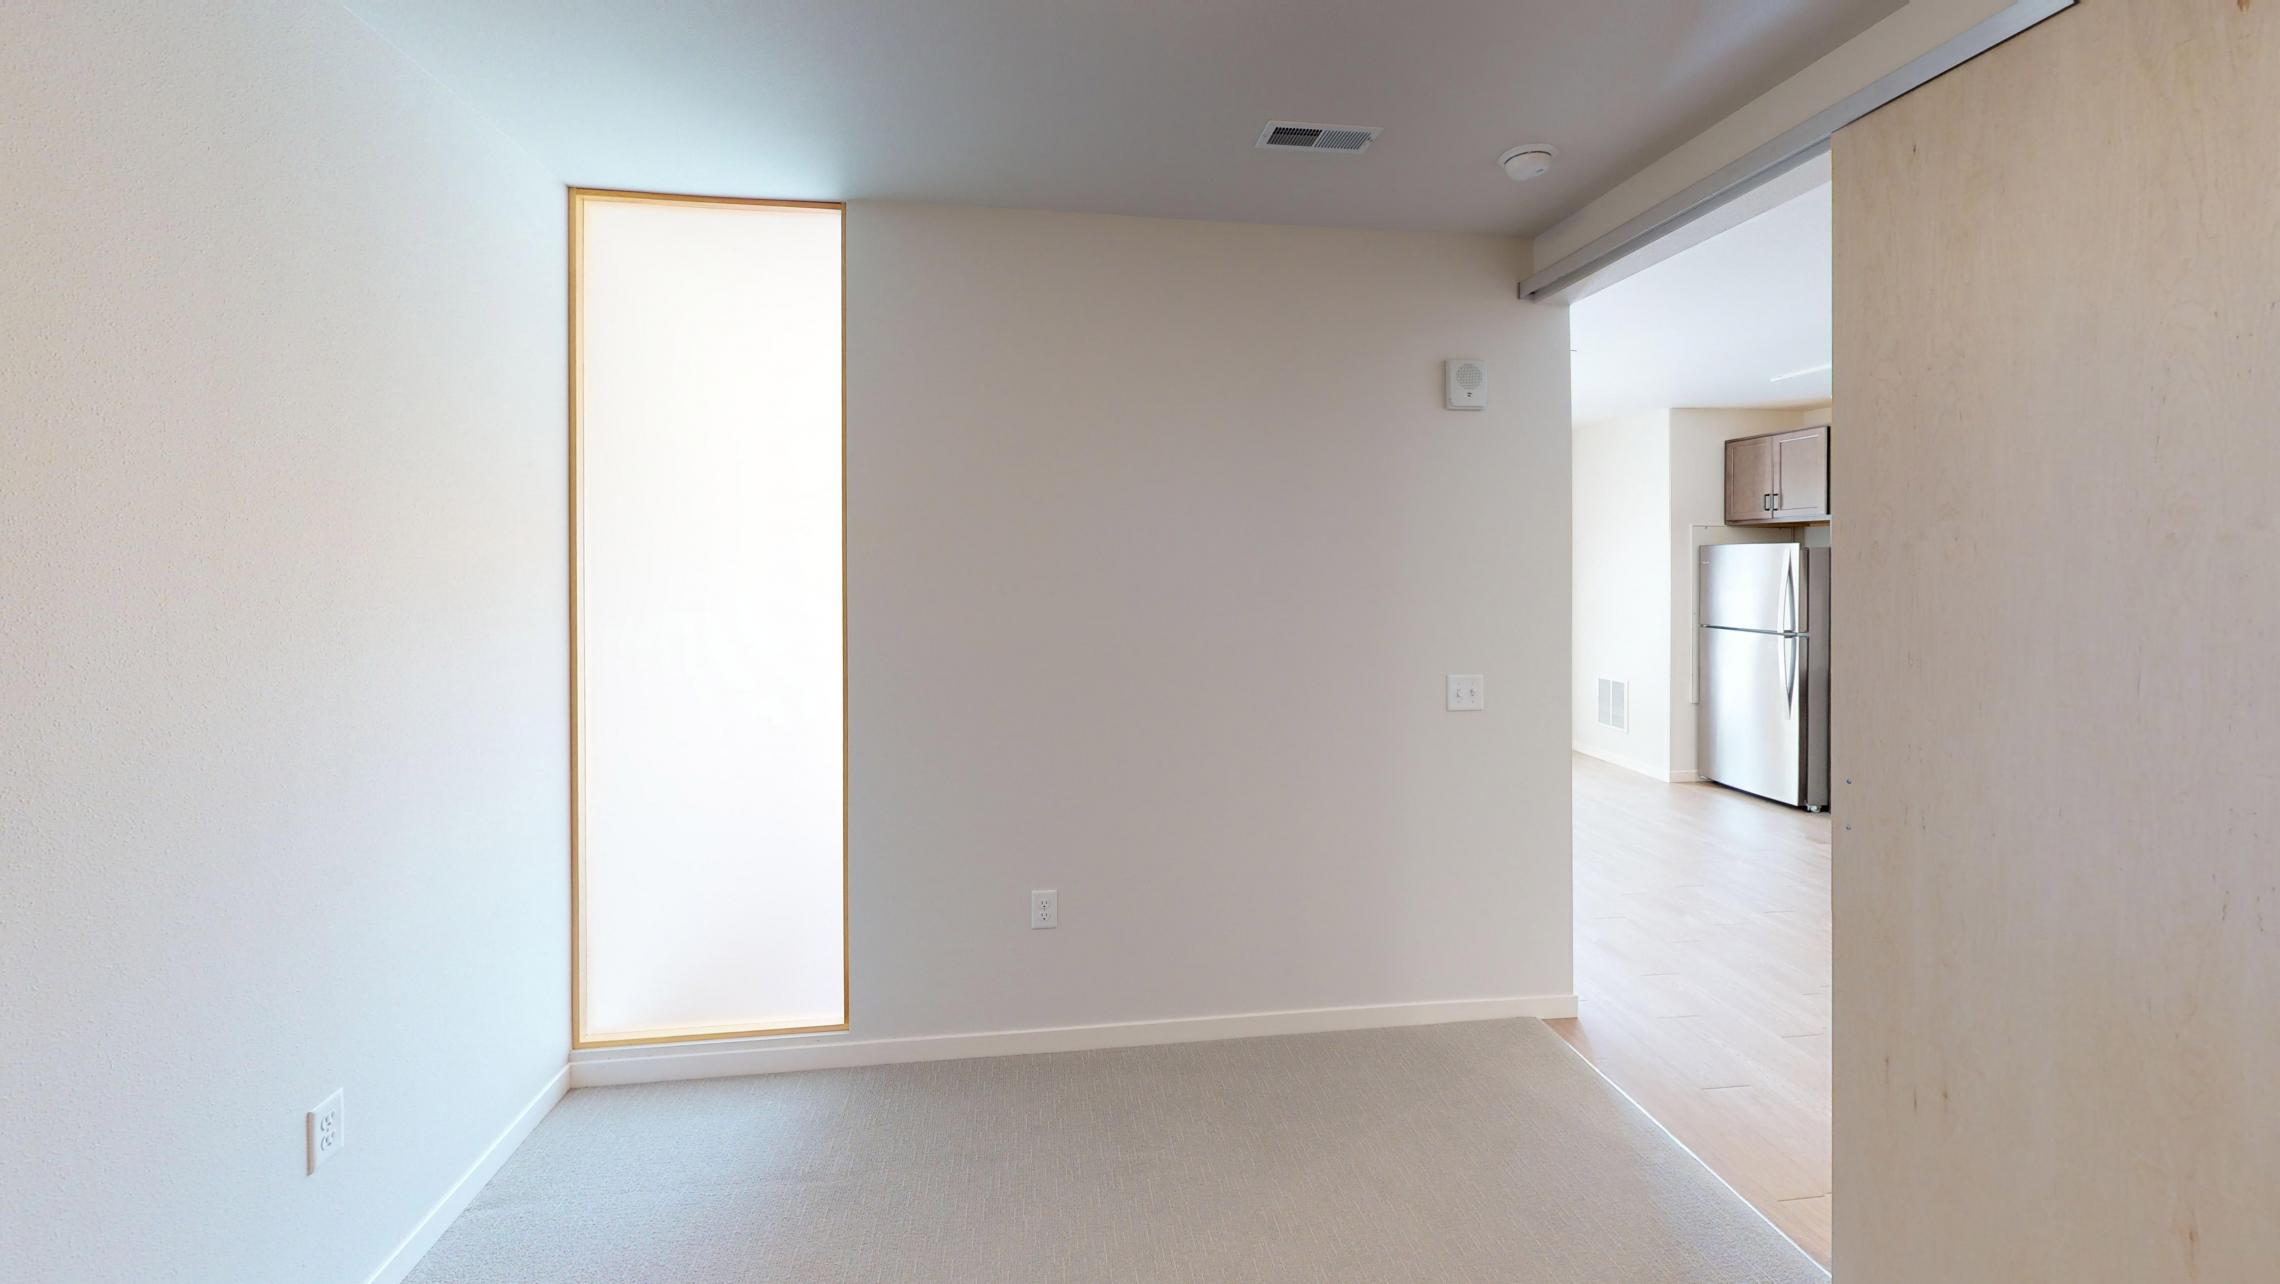 Quarter-Row-Yards-Apartment-122-One-Bedroom-Patio-Modern-Upscale-Fitness-Lounge-Courtyard-Downtown-Madison-View-Bike-Trail-Lifestyle